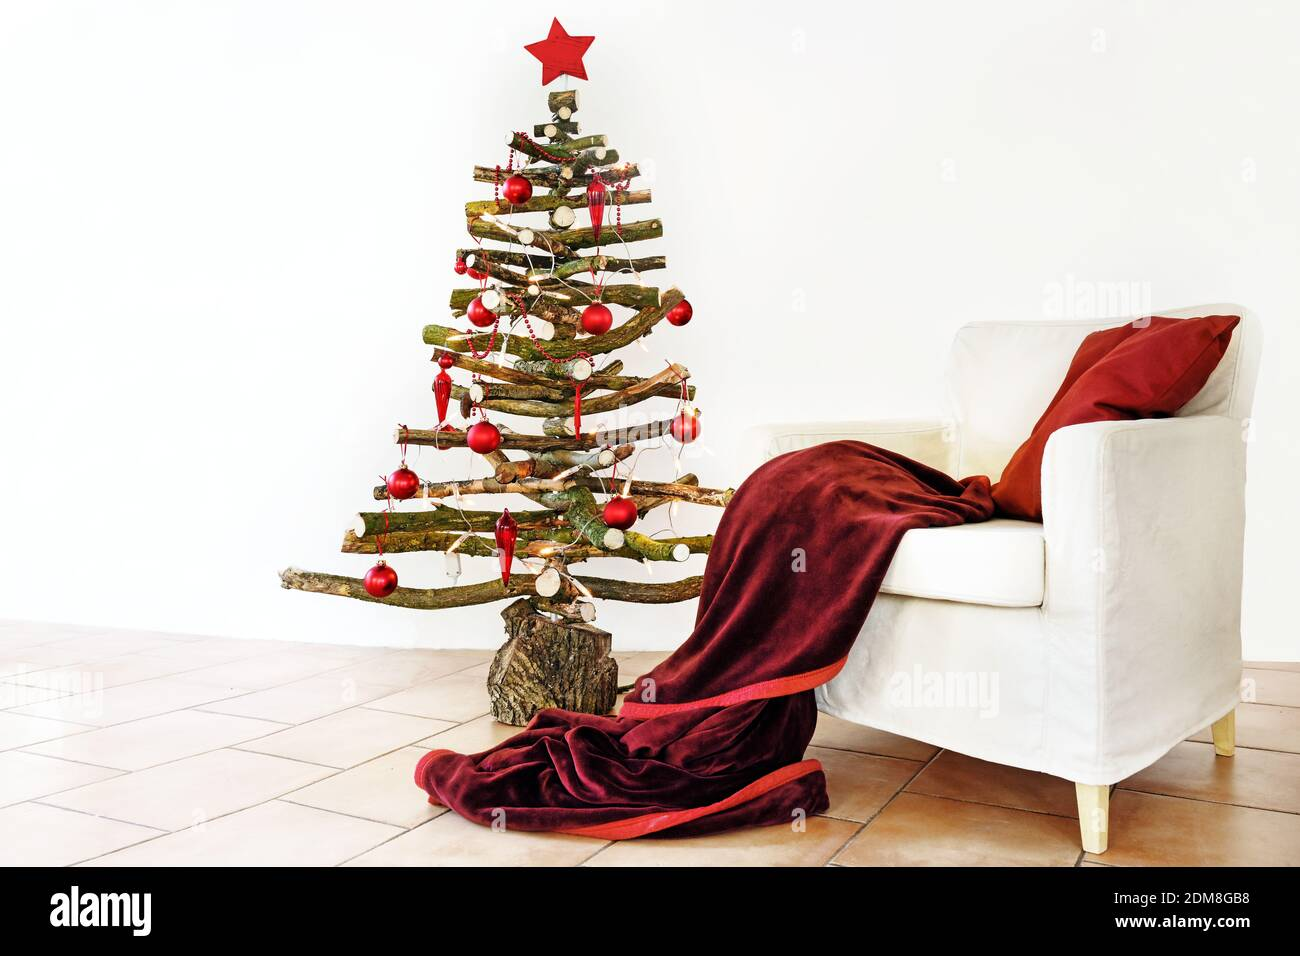 Homemade Alternative Christmas Tree Of Rustic Raw Wood Branches Decorated With Fairy Lights And Red Balls Next To An Armchair With Wool Blanket Copy Stock Photo Alamy